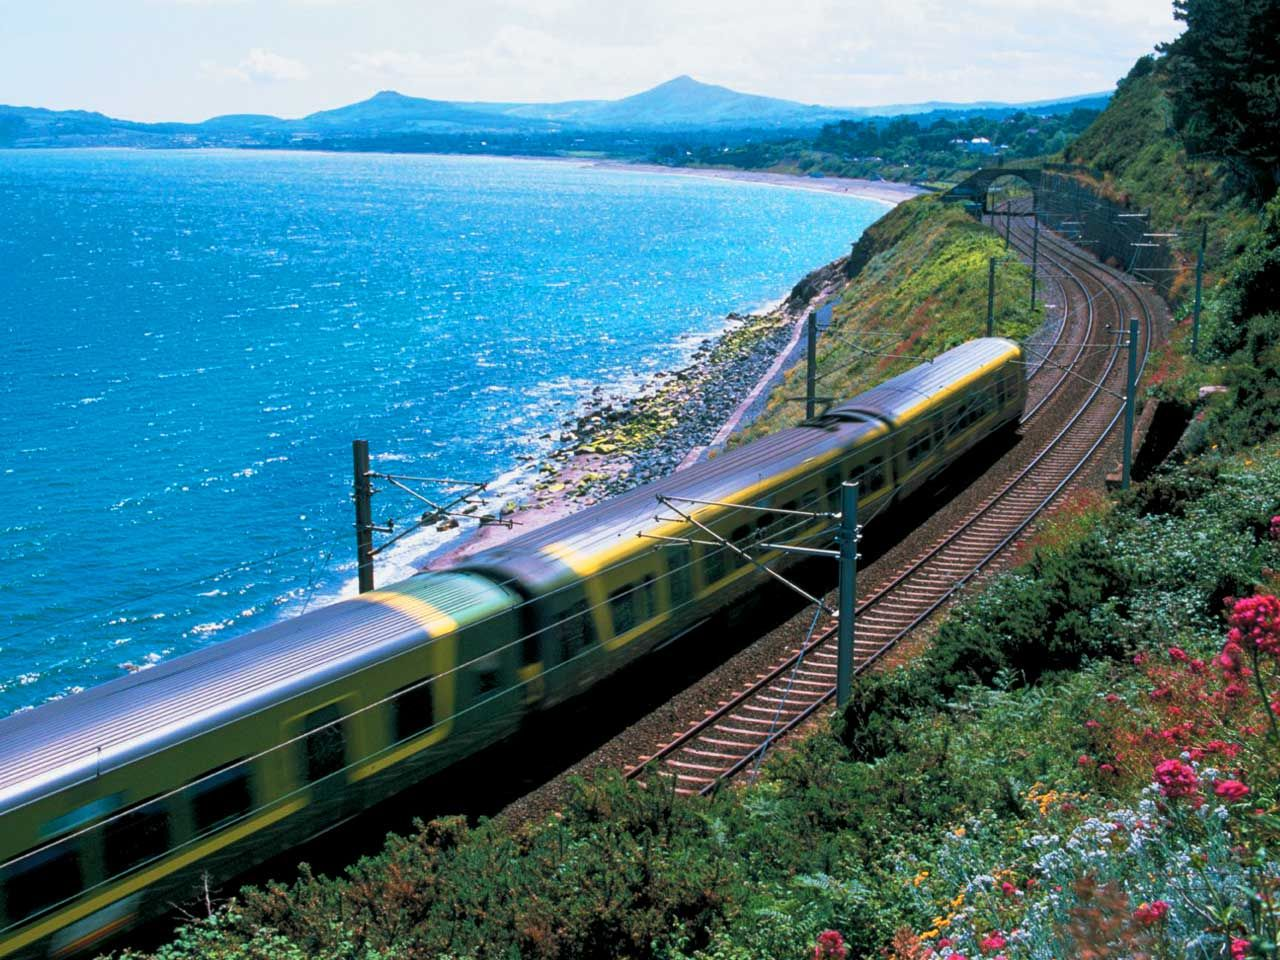 Take The Dart Dublin Area Rapid Transit Train From City Centre To Bray In Adjoining County Wicklow Garden Of Ireland For Beautiful And